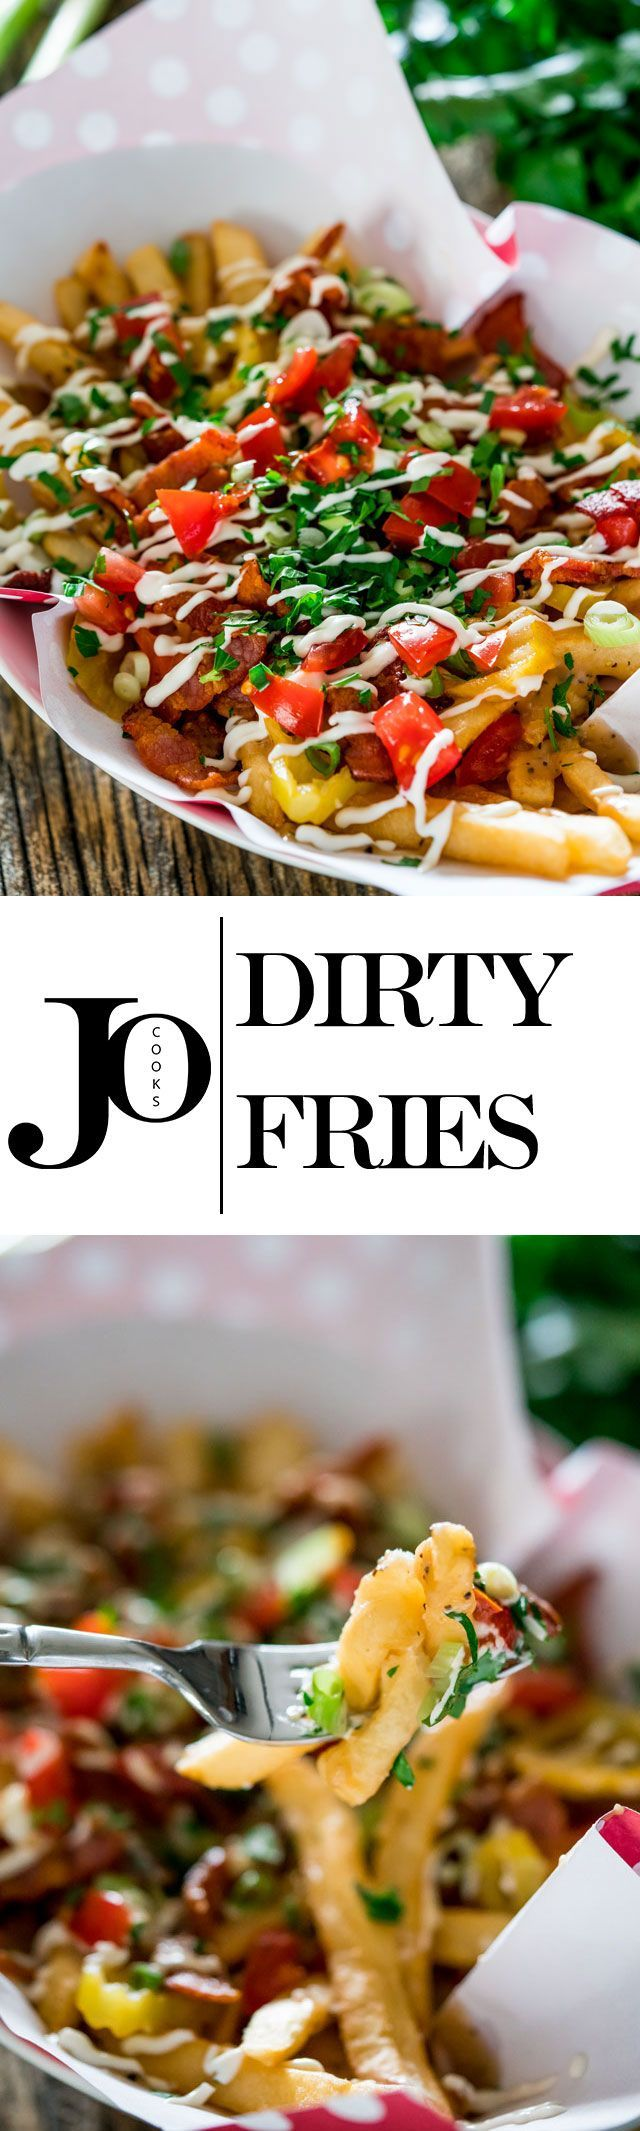 These dirty fries will rock your world! They're loaded with homemade gravy…